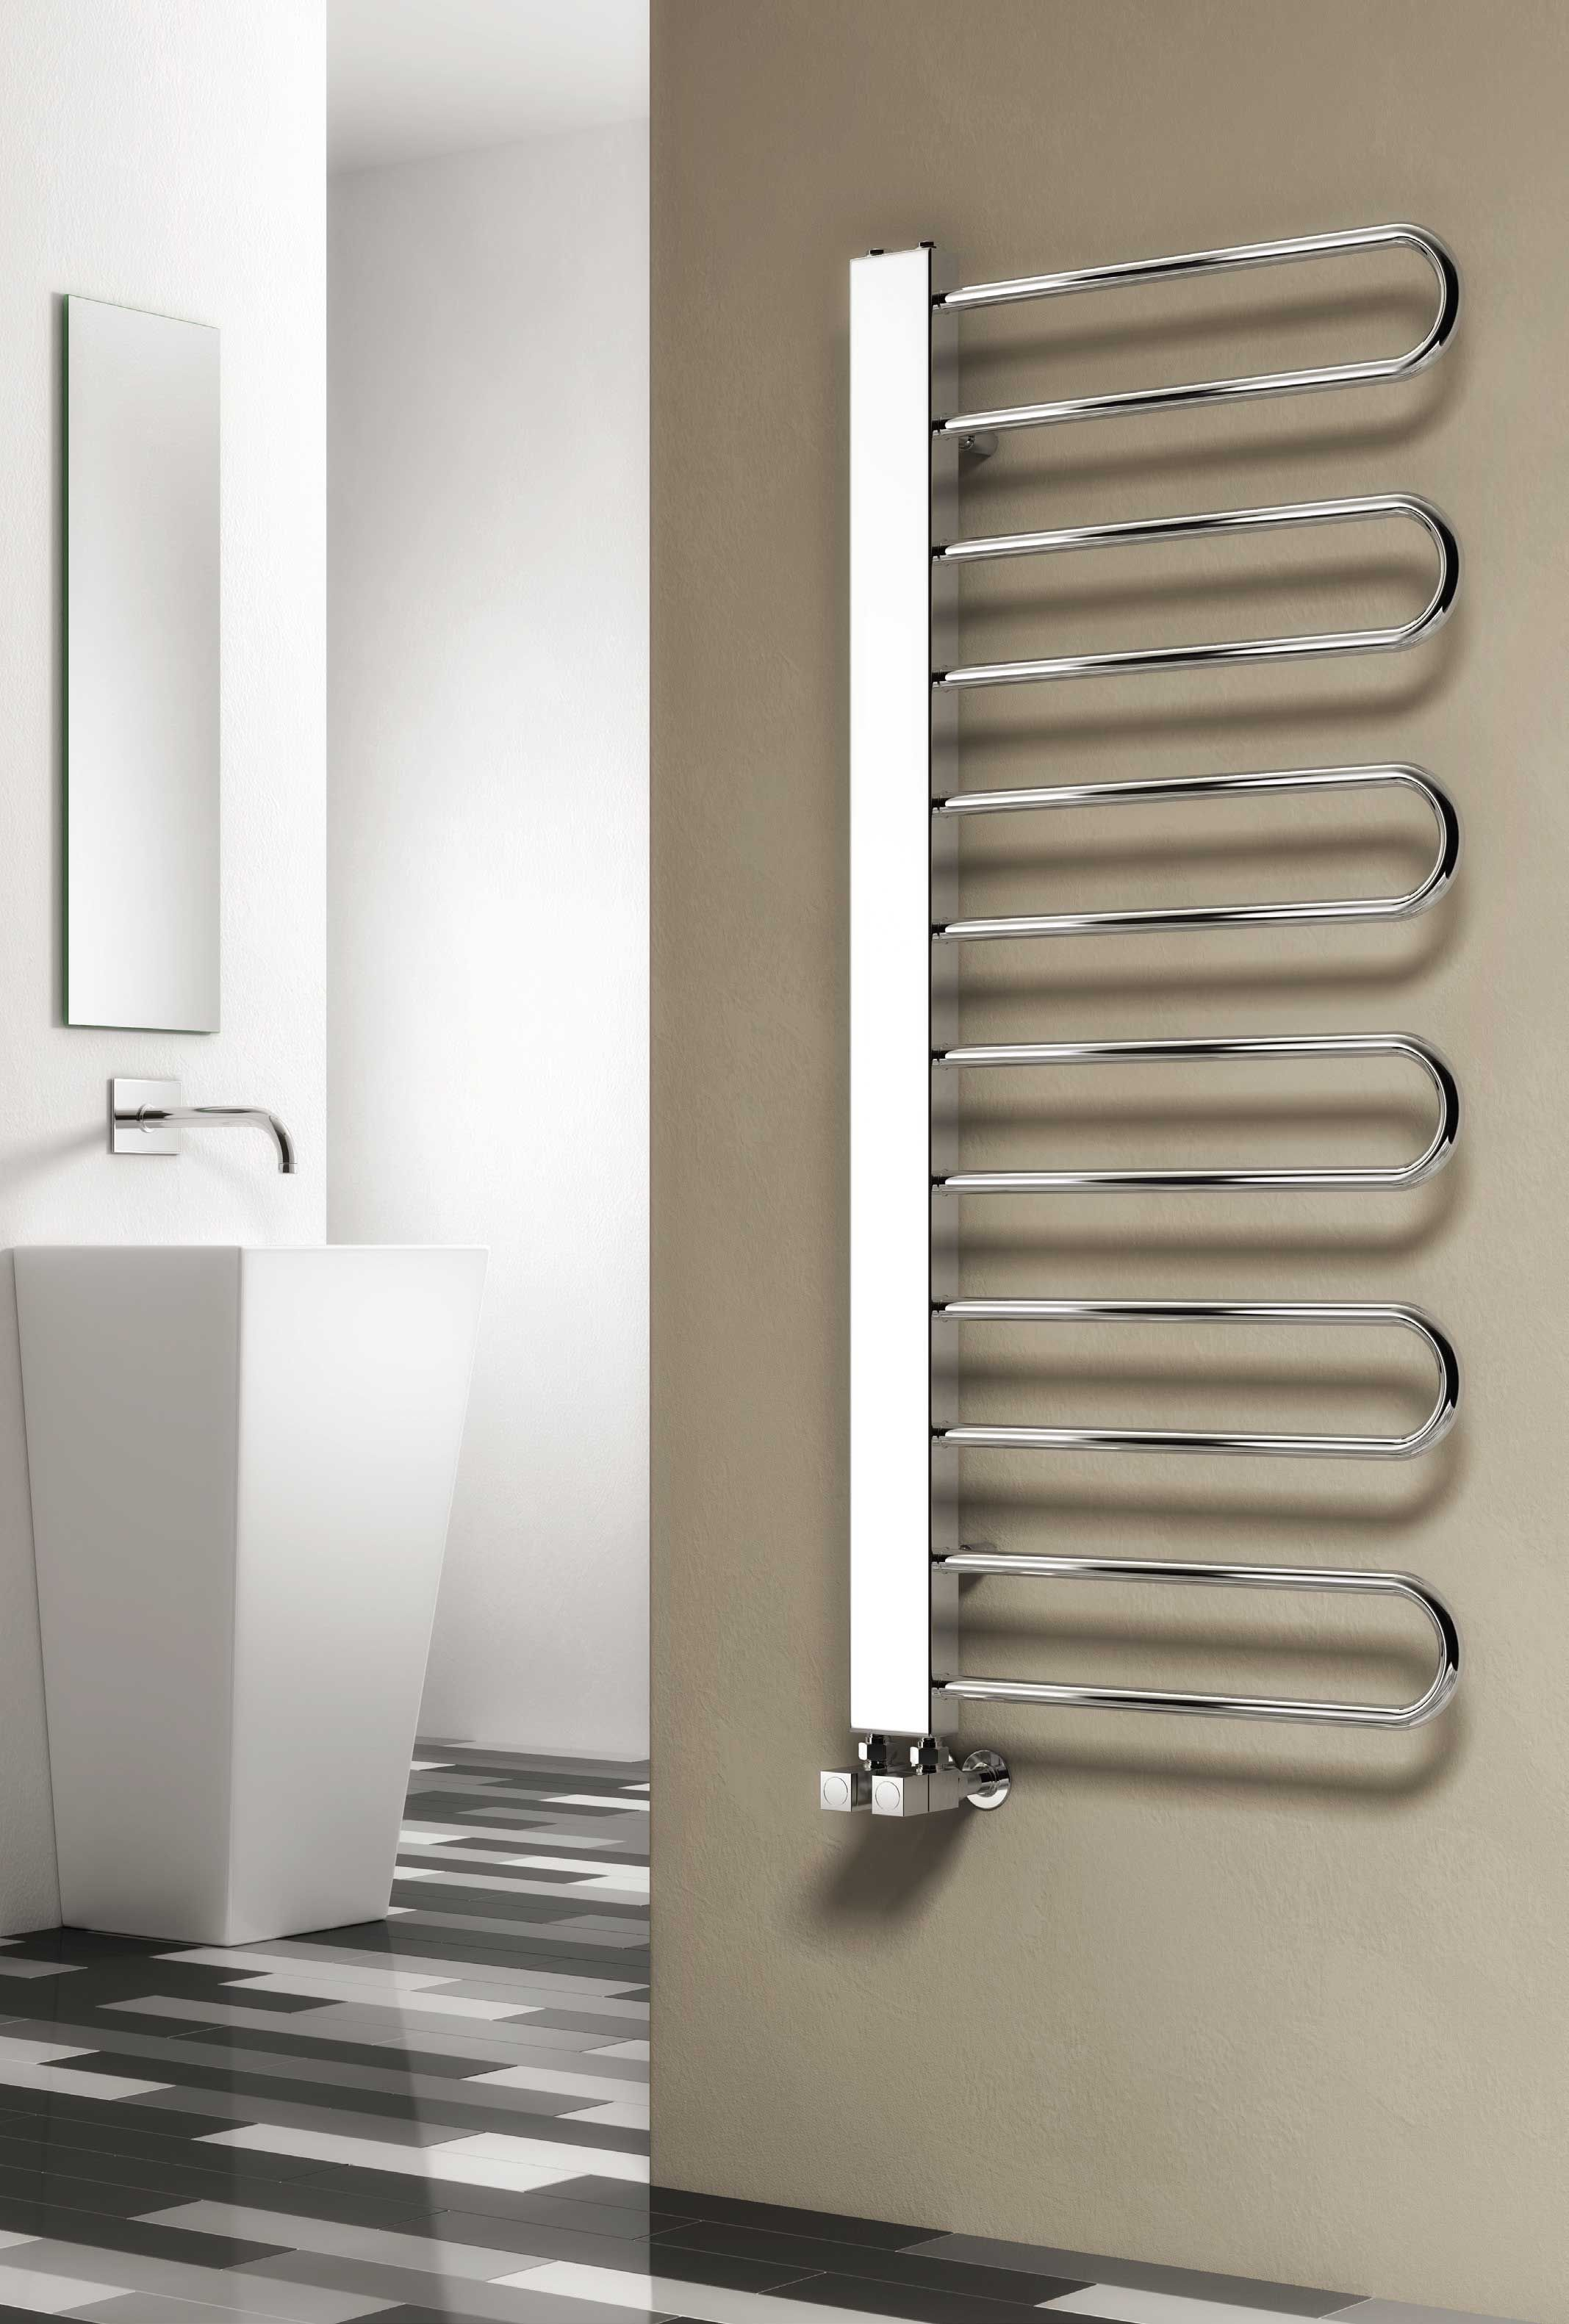 The Reina Larino Designer Heated Towel Rail The Perfect Addition To Any Bathroom Or Kitchen You Also Have The Optio Heated Towel Rail Towel Rail Heated Towel